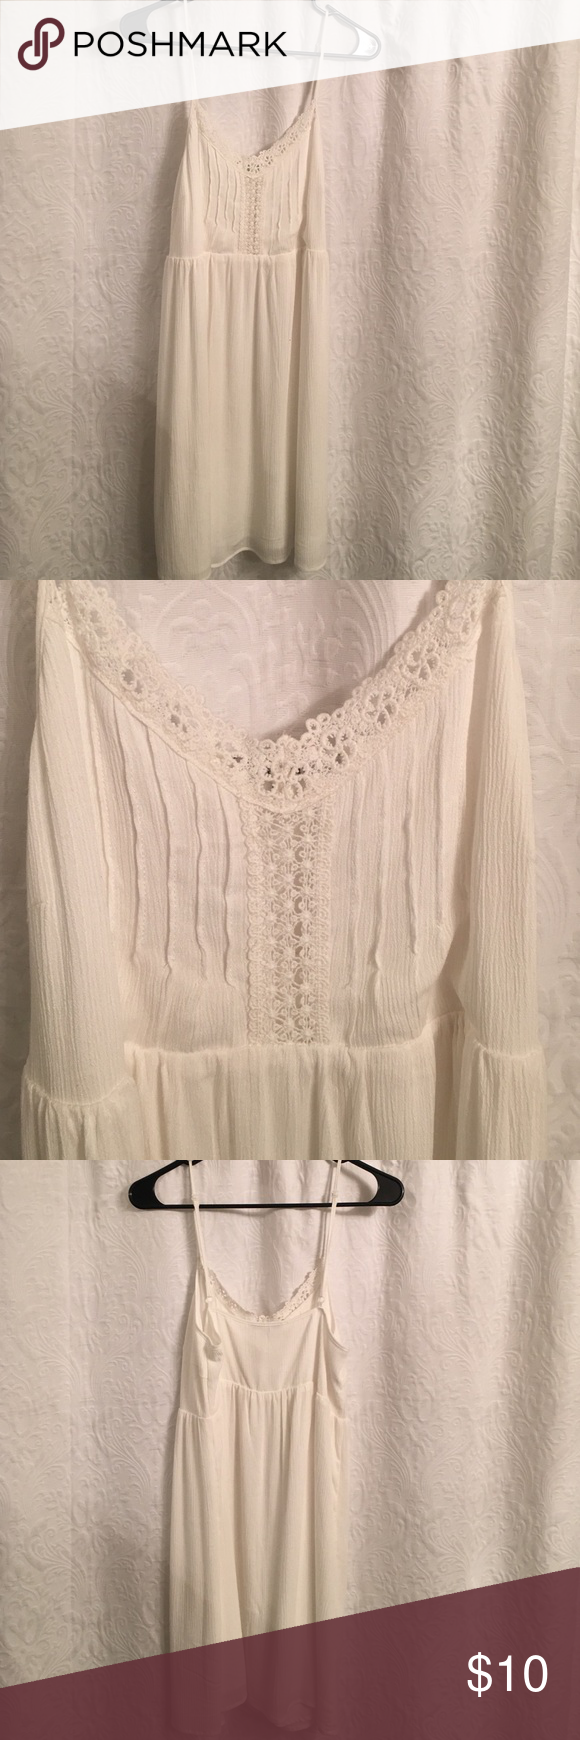 Baby doll dress White babydoll style spaghetti strap dress! 100% rayon. Size medium. Super cute. Never been worn. Not free people. Free People Dresses Mini